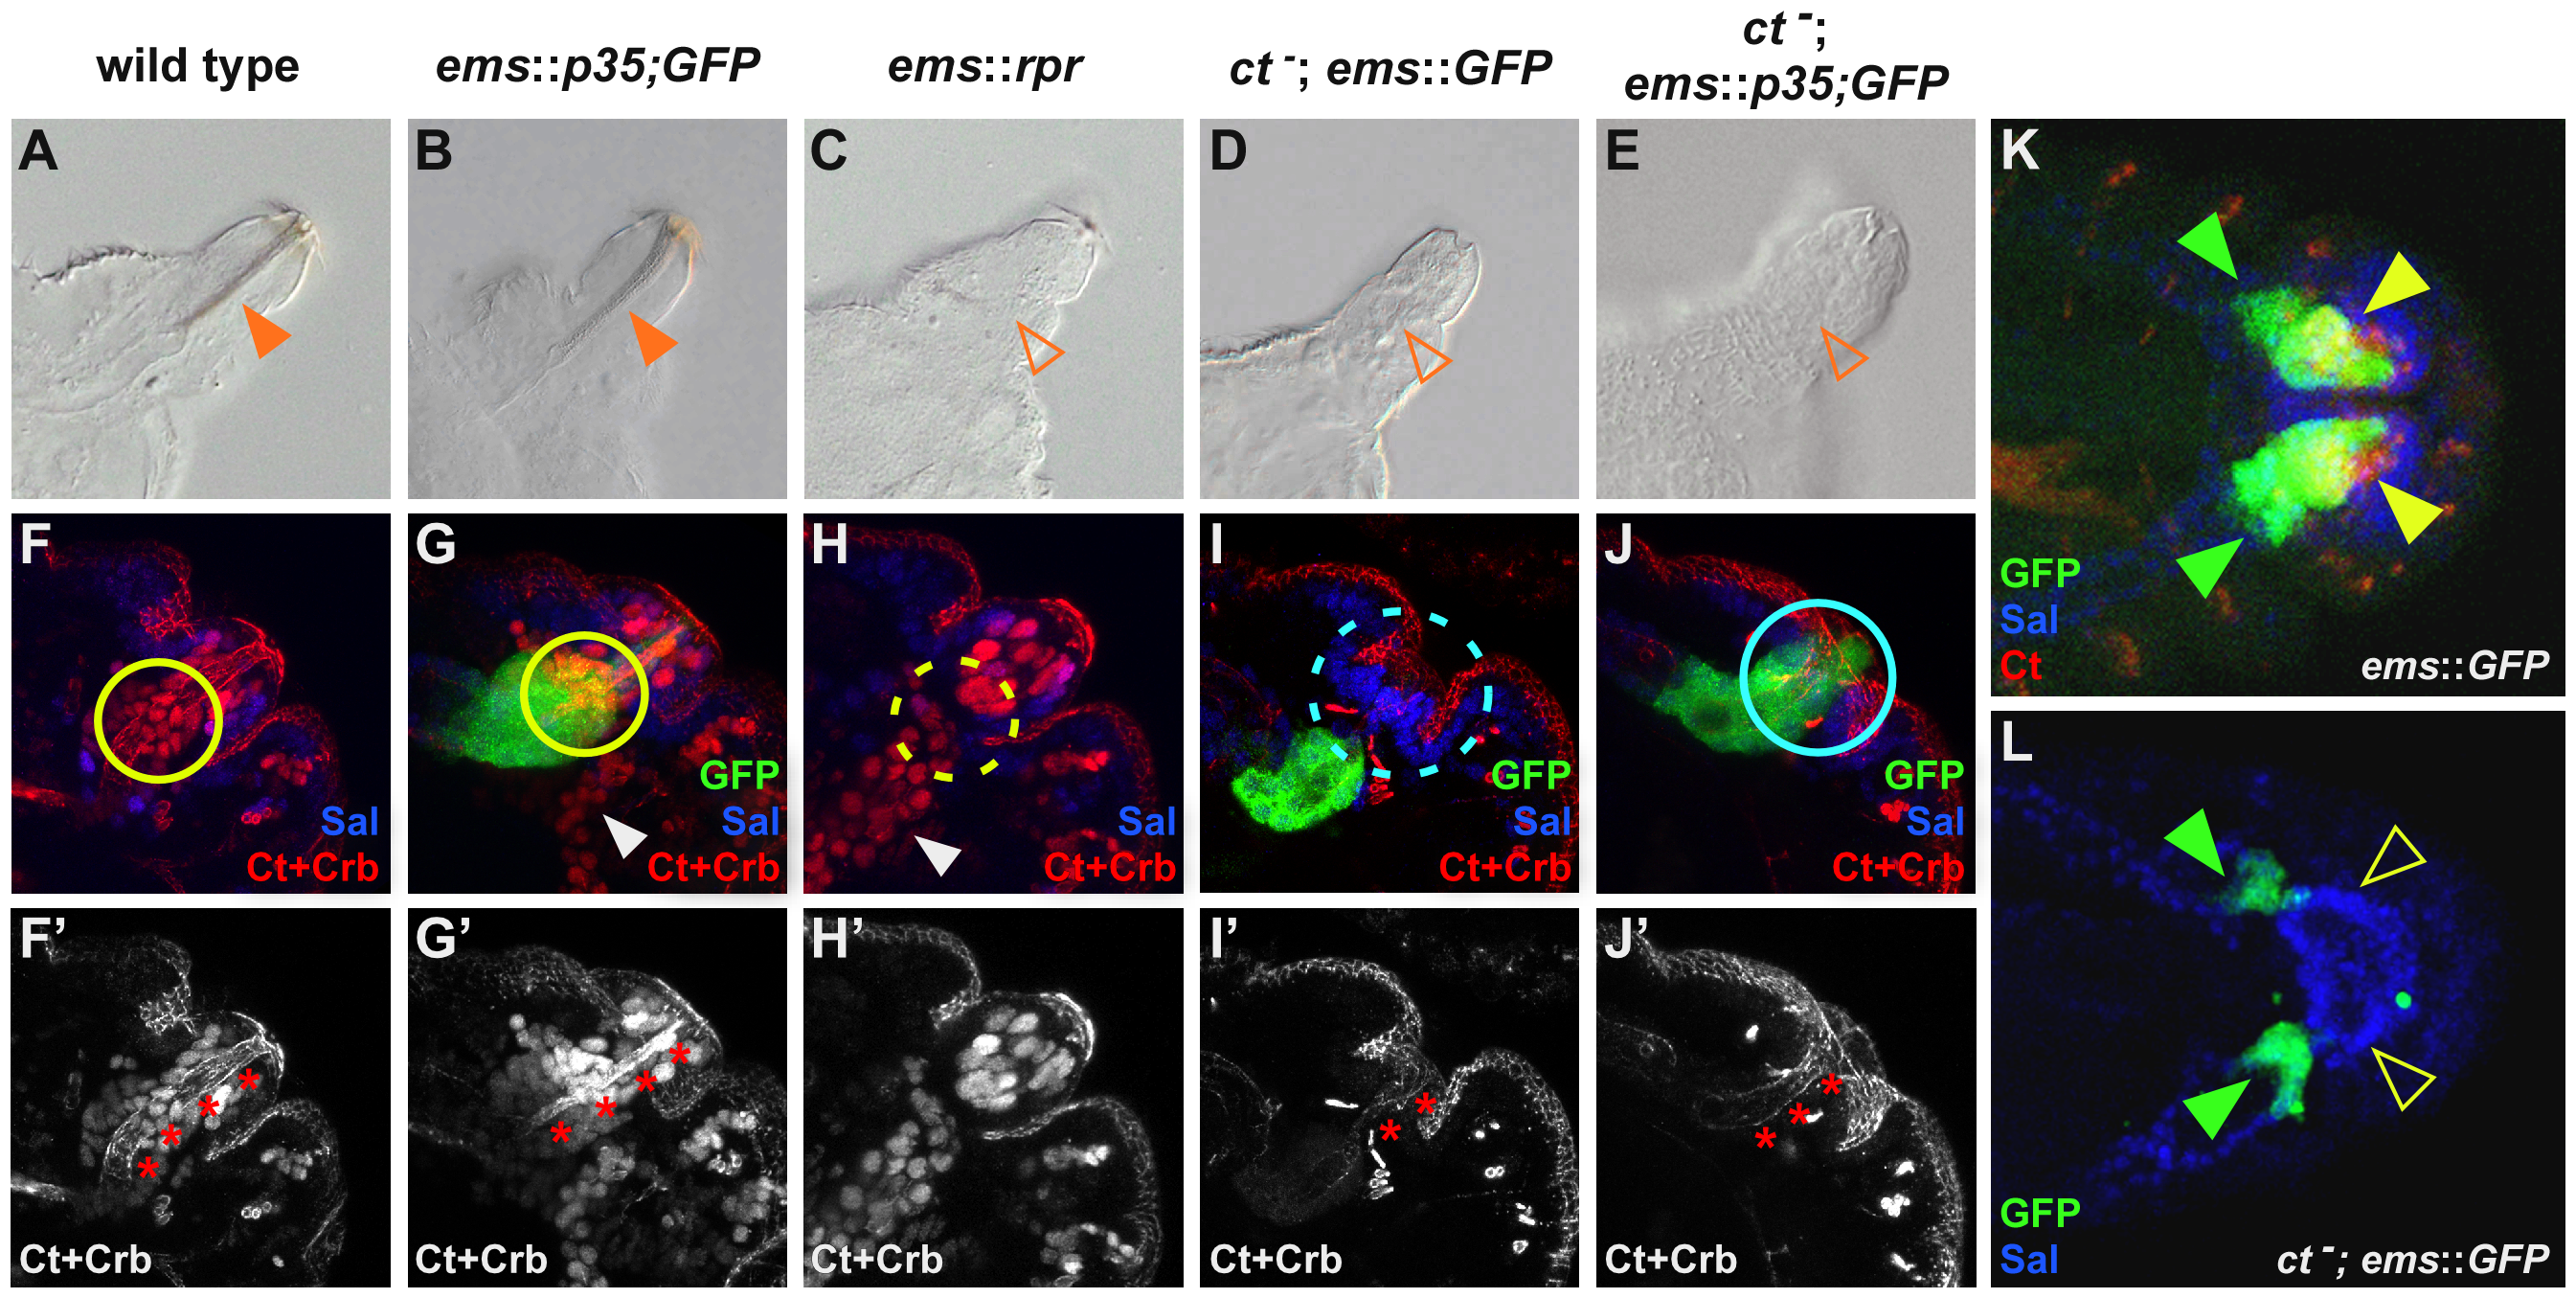 Cut-dependent repression of apoptosis is required for cell survival and differentiation.